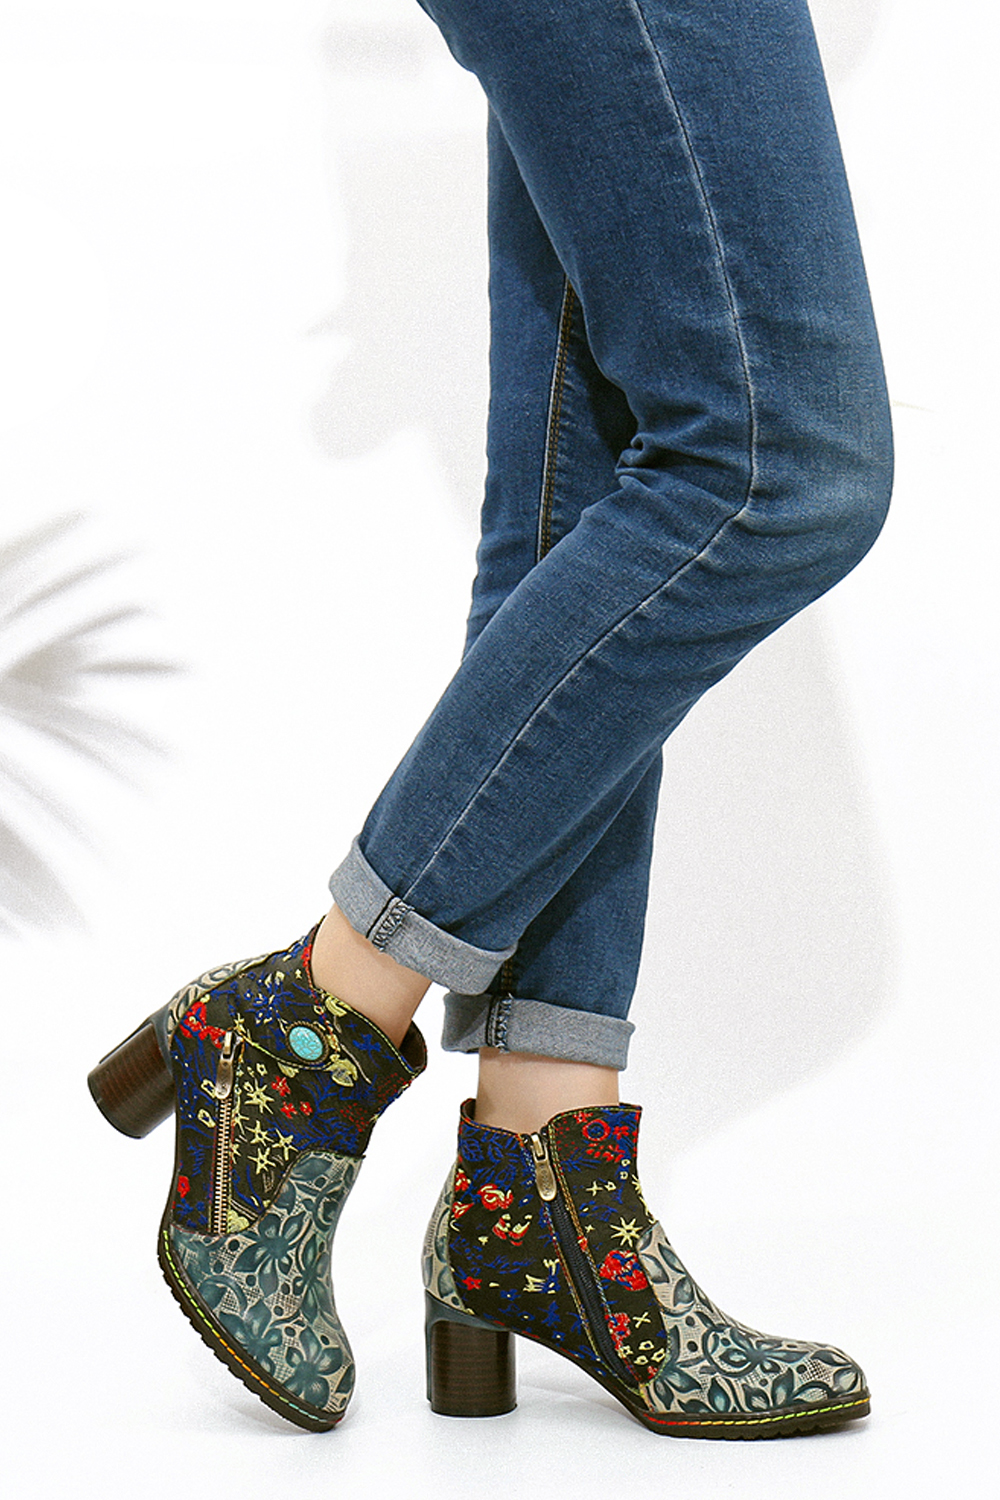 a close up picture of an ankle boots with a trendy embroidery